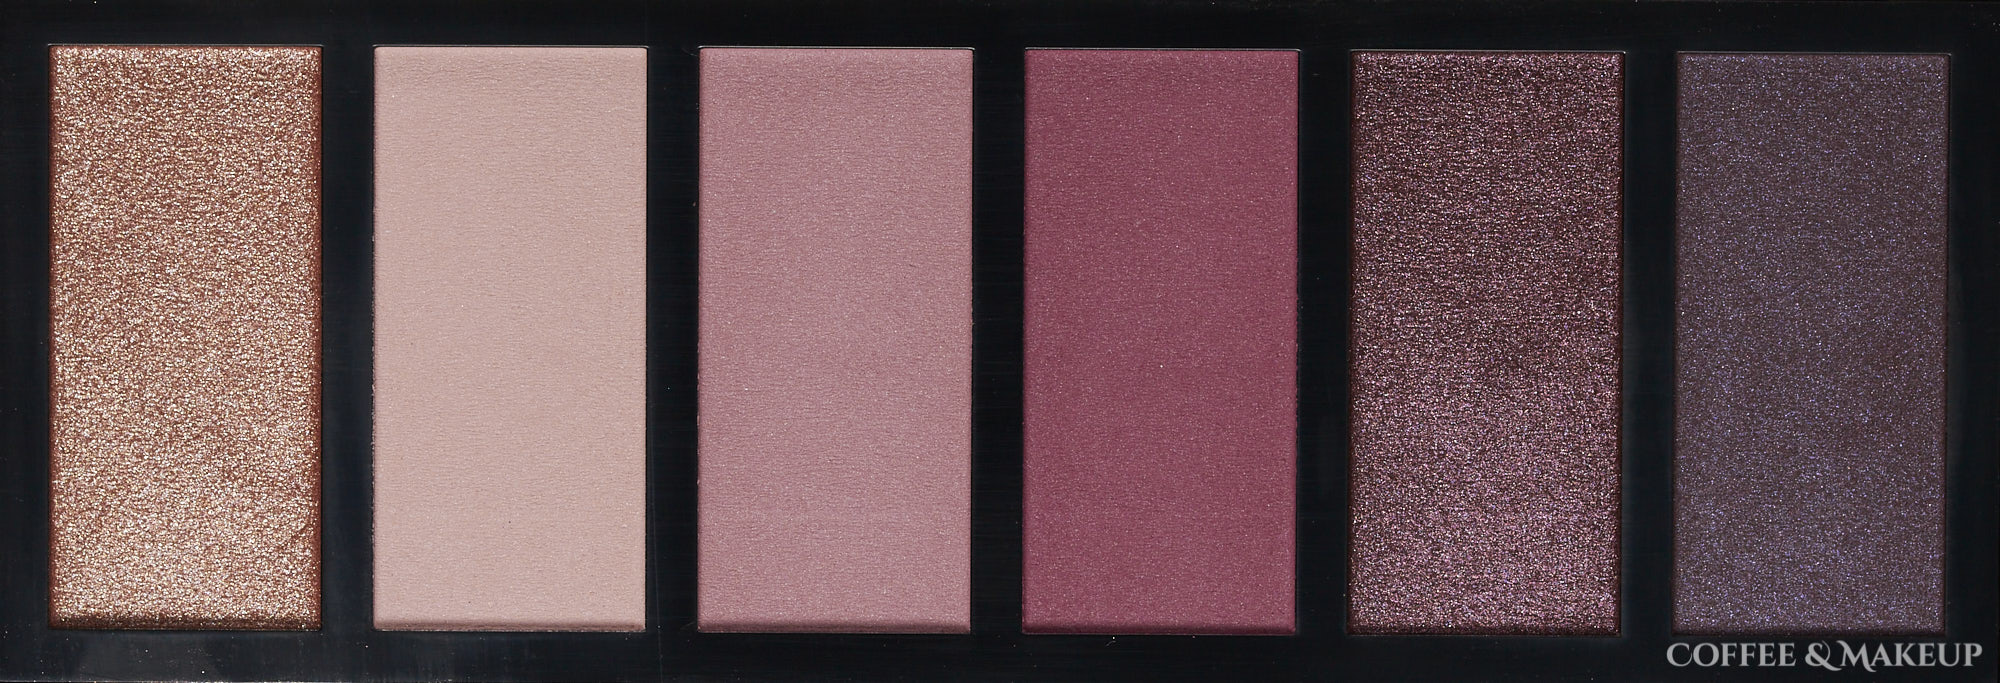 Milani Rosy Revenge Most Wanted Eyeshadow Palette